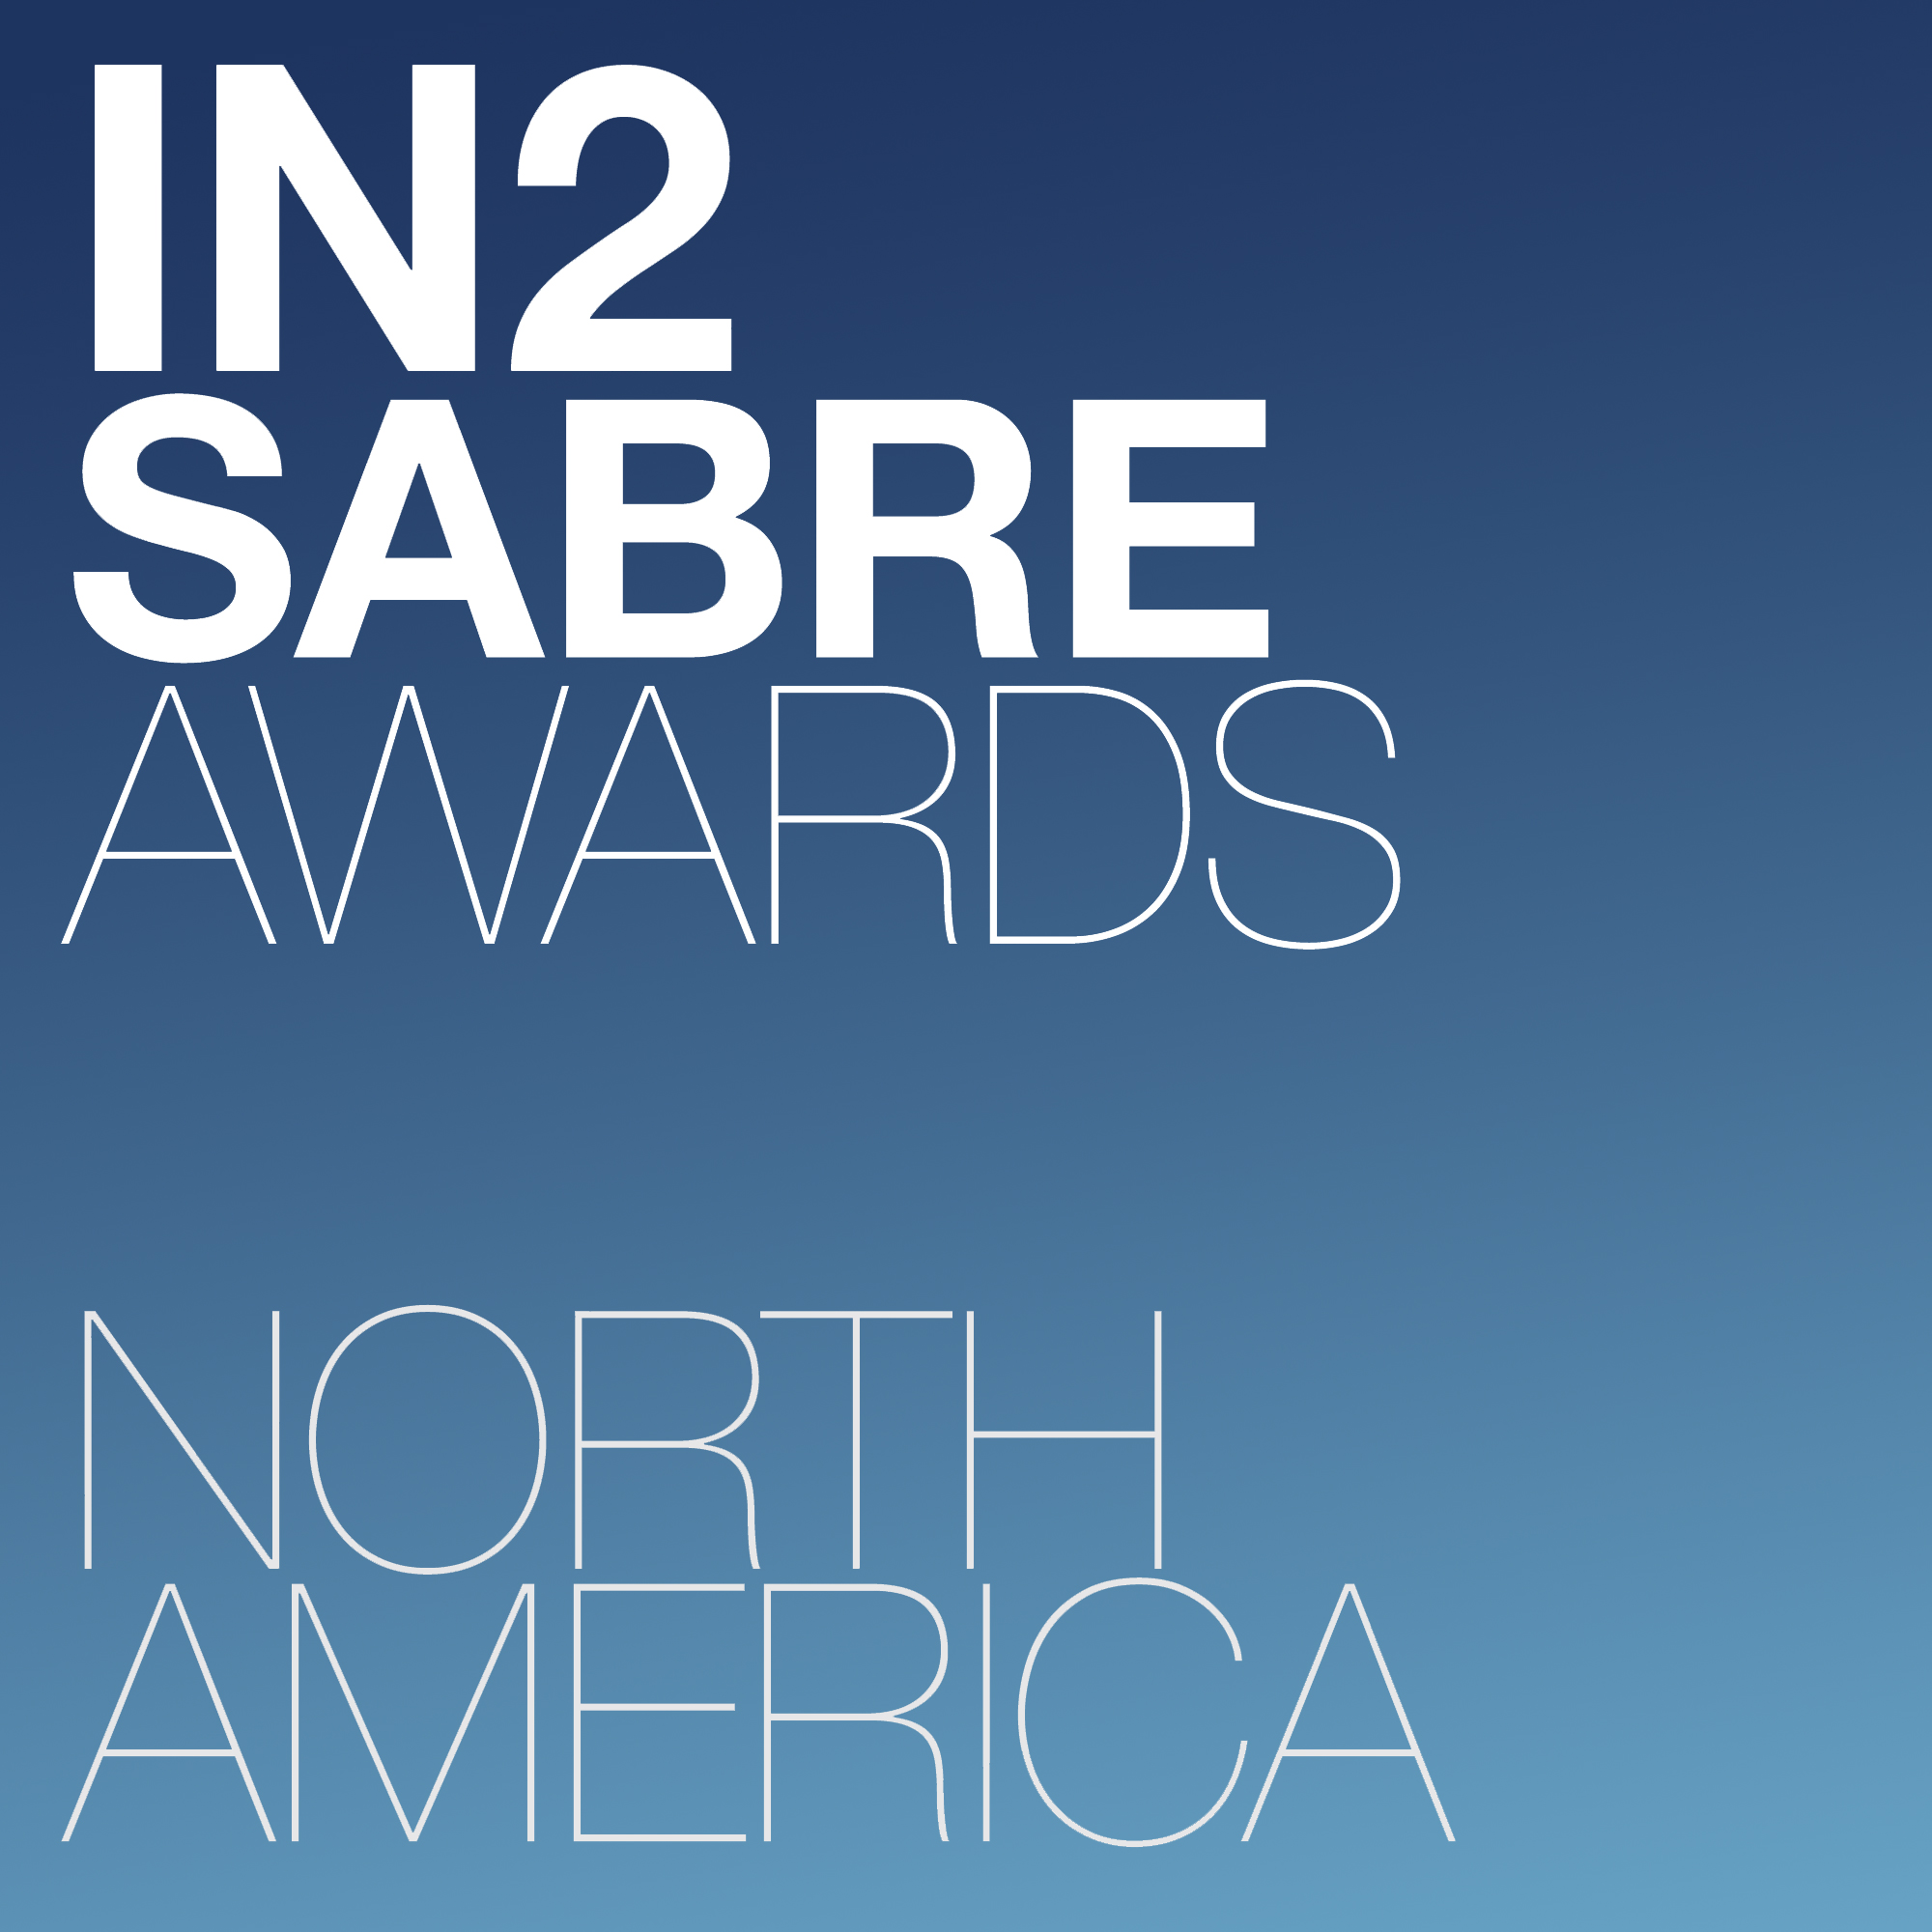 (Holmes Report) In2 SABRE Awards North America